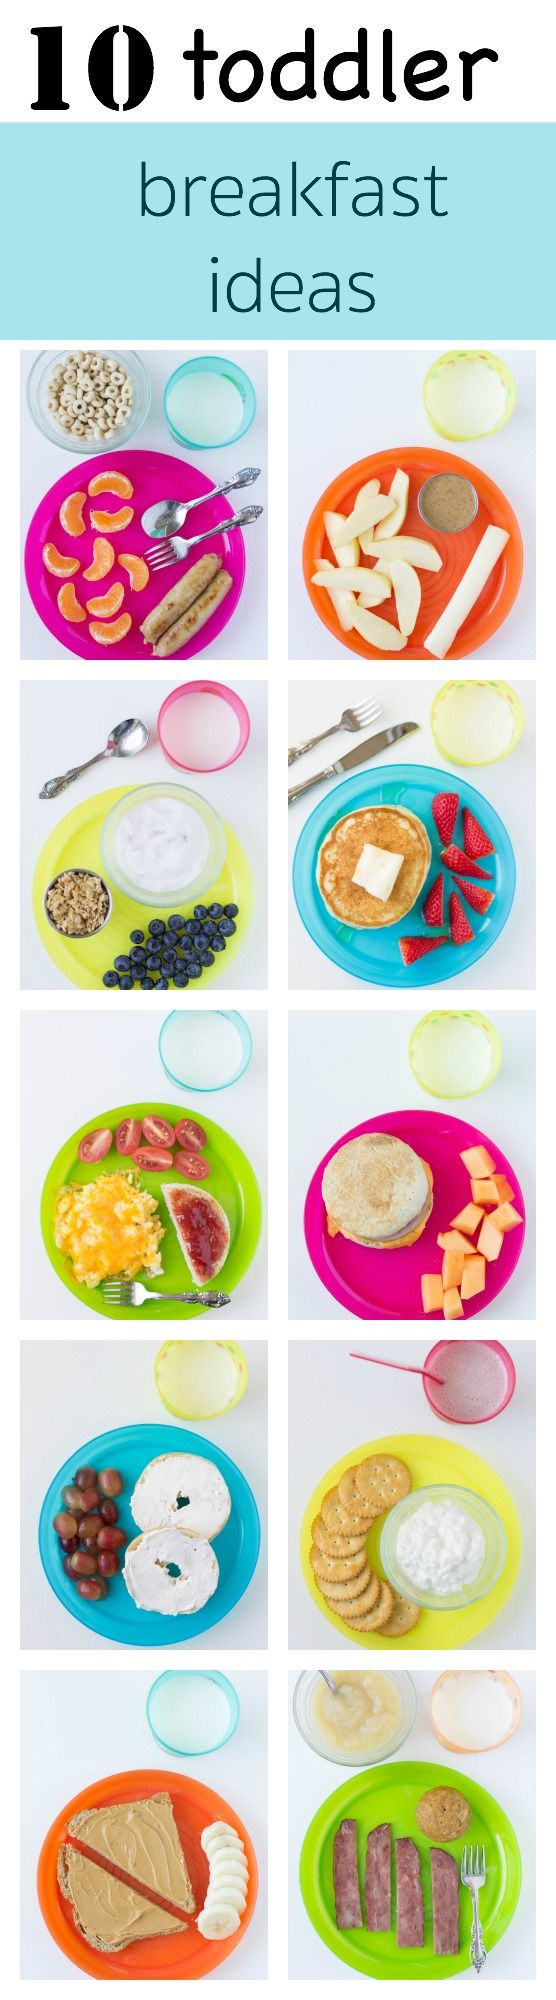 10 Toddler Breakfast Ideas